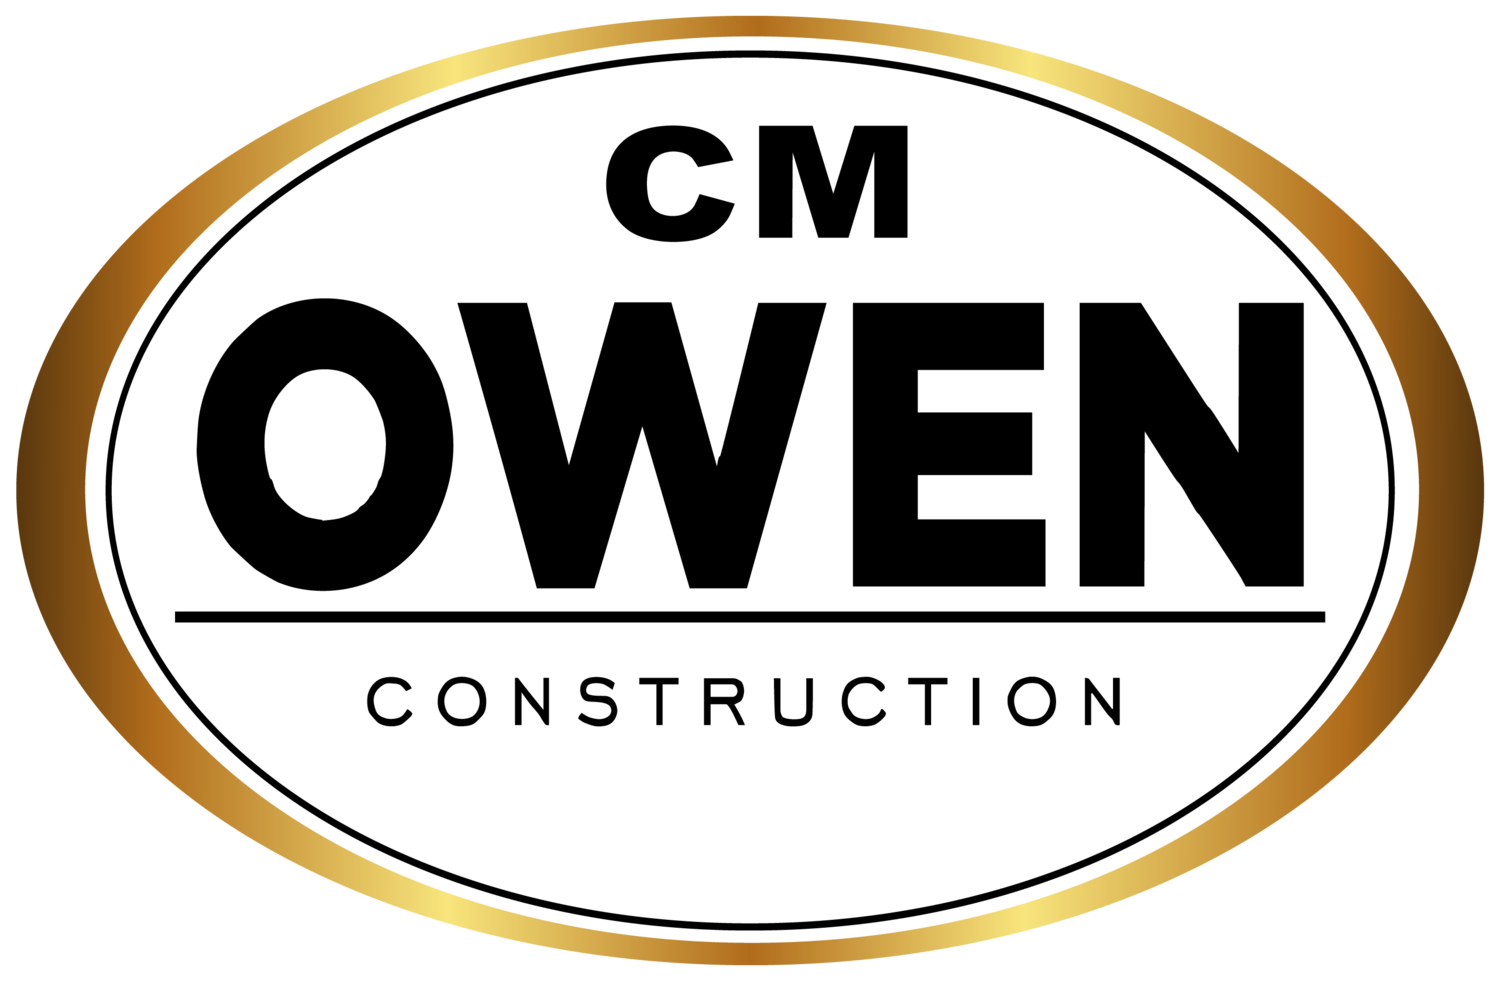 CM Owen Construction